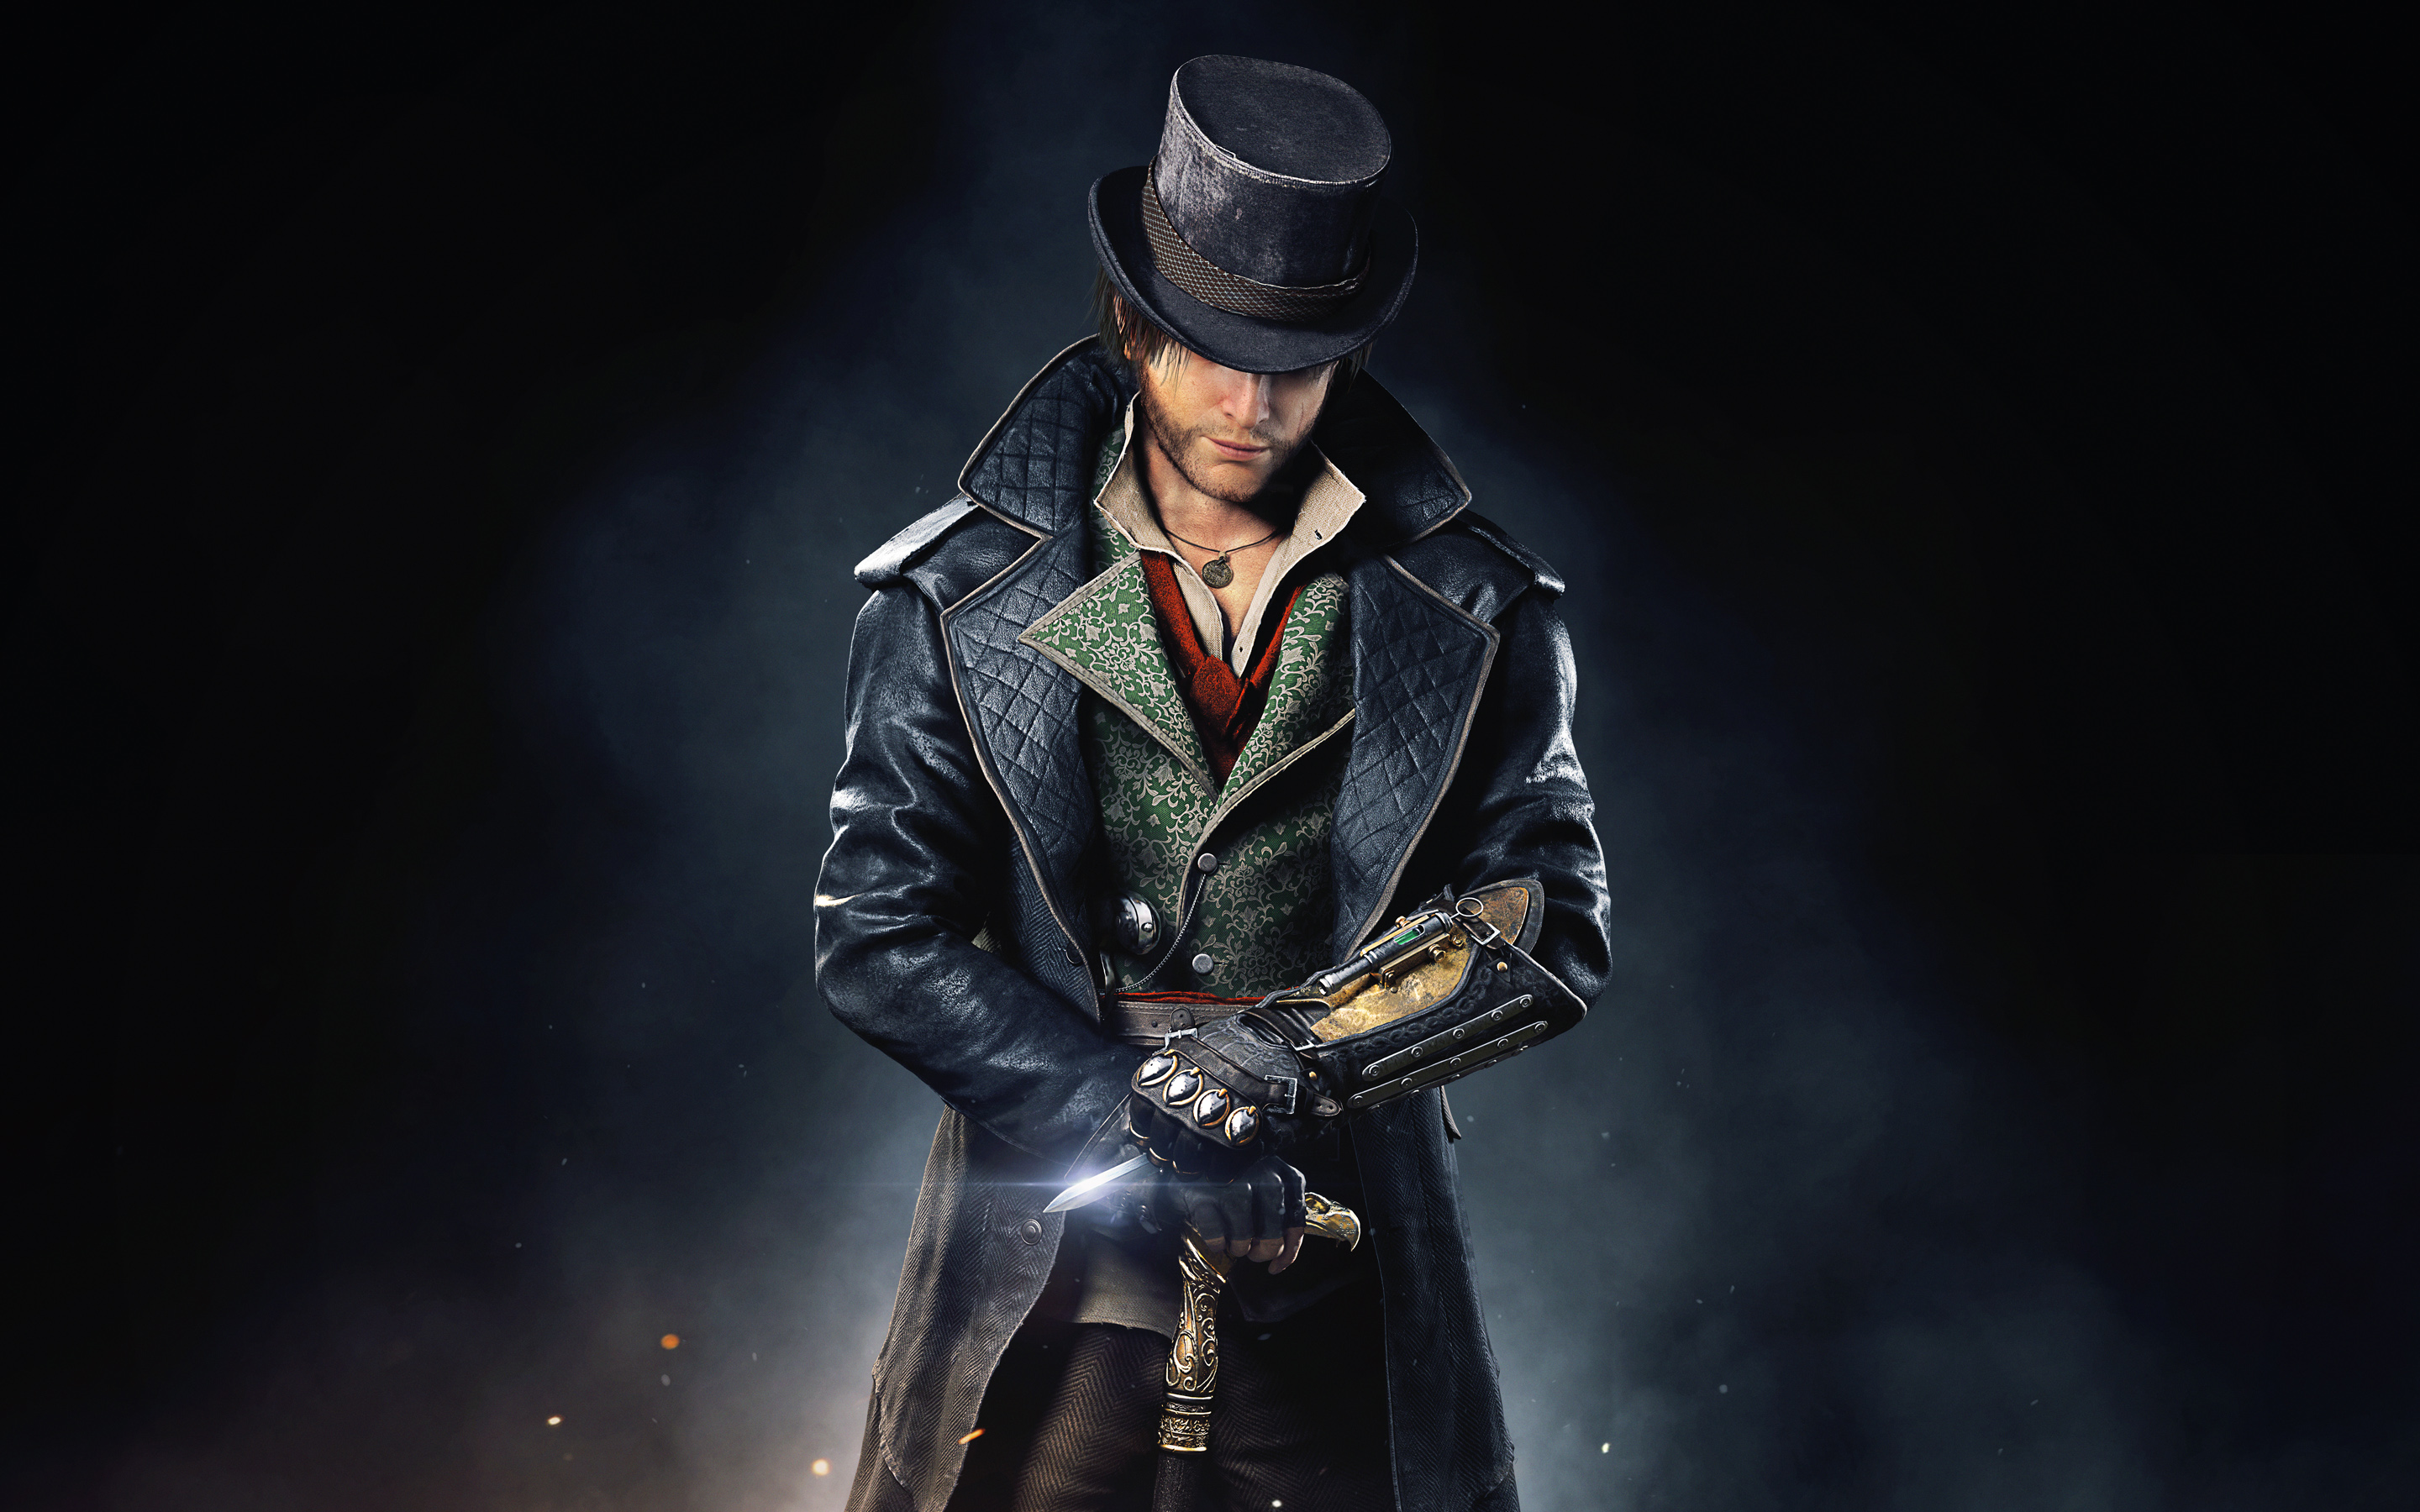 Entrevista con Francois Pelland sobre Assasin's Creed Syndicate